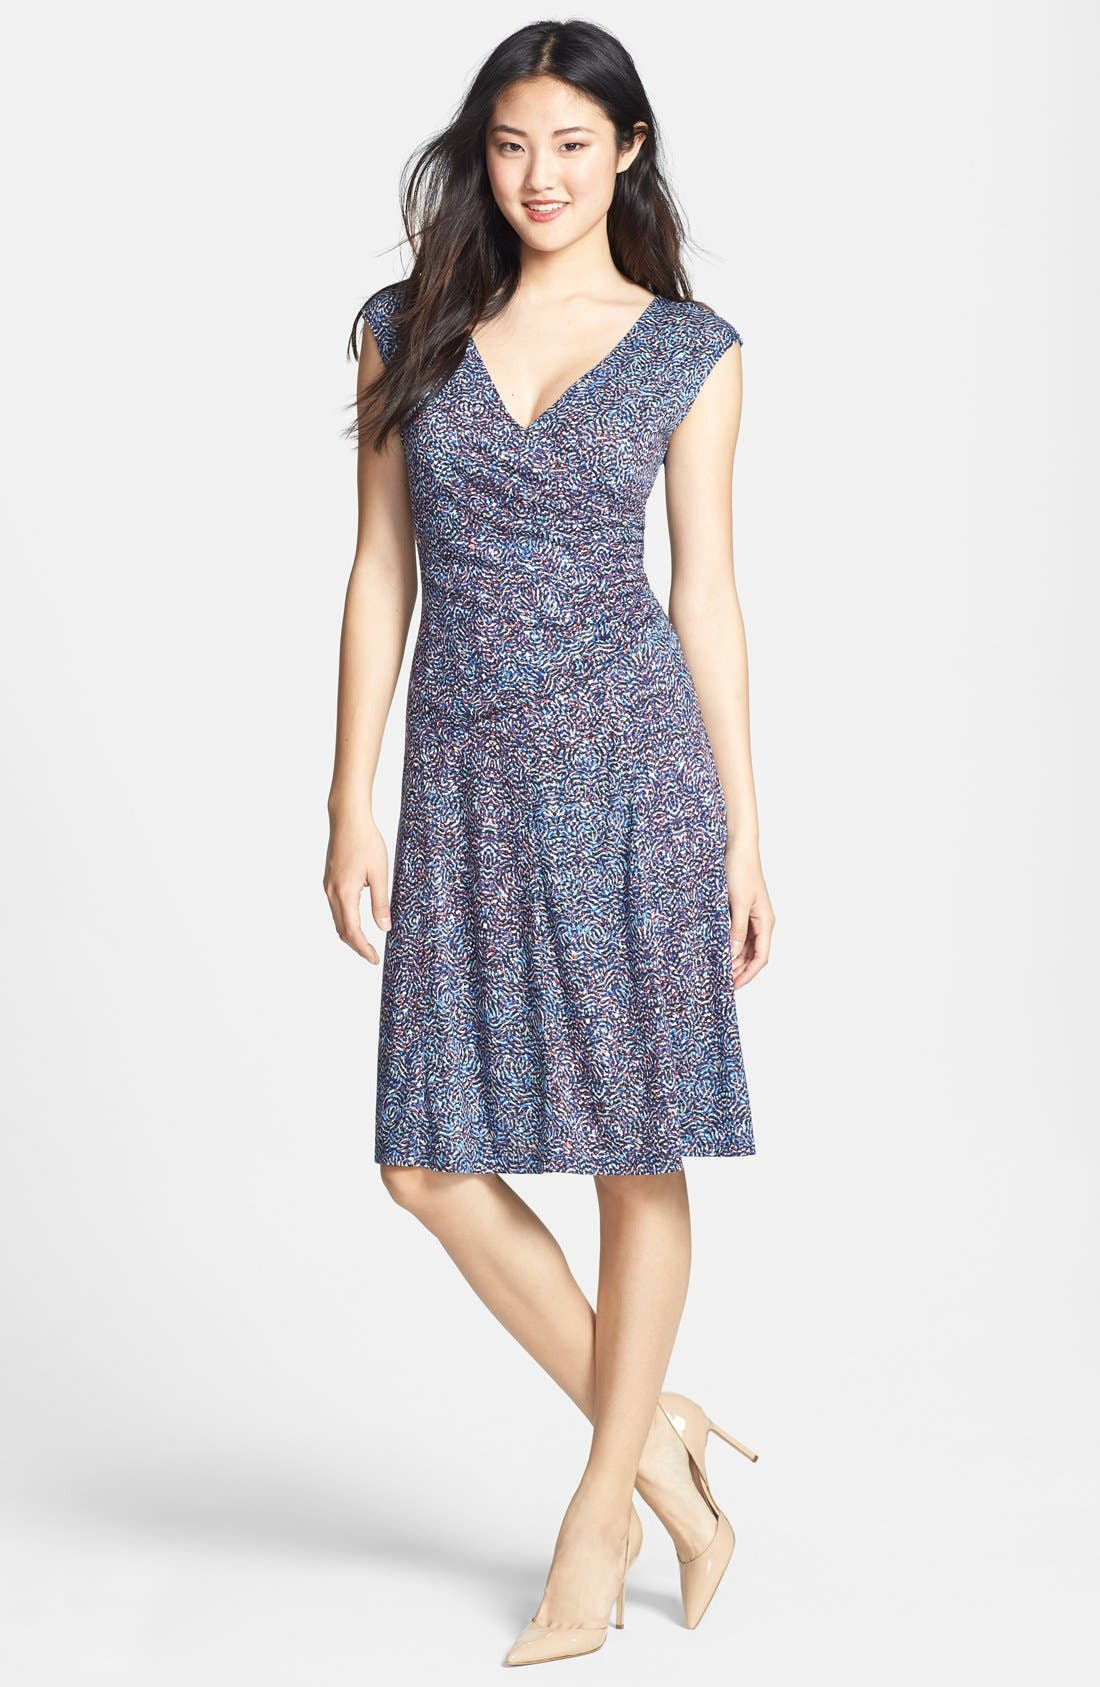 Main Image - NIC+ZOE 'Mosaic' Fit & Flare Dress (Regular & Petite)